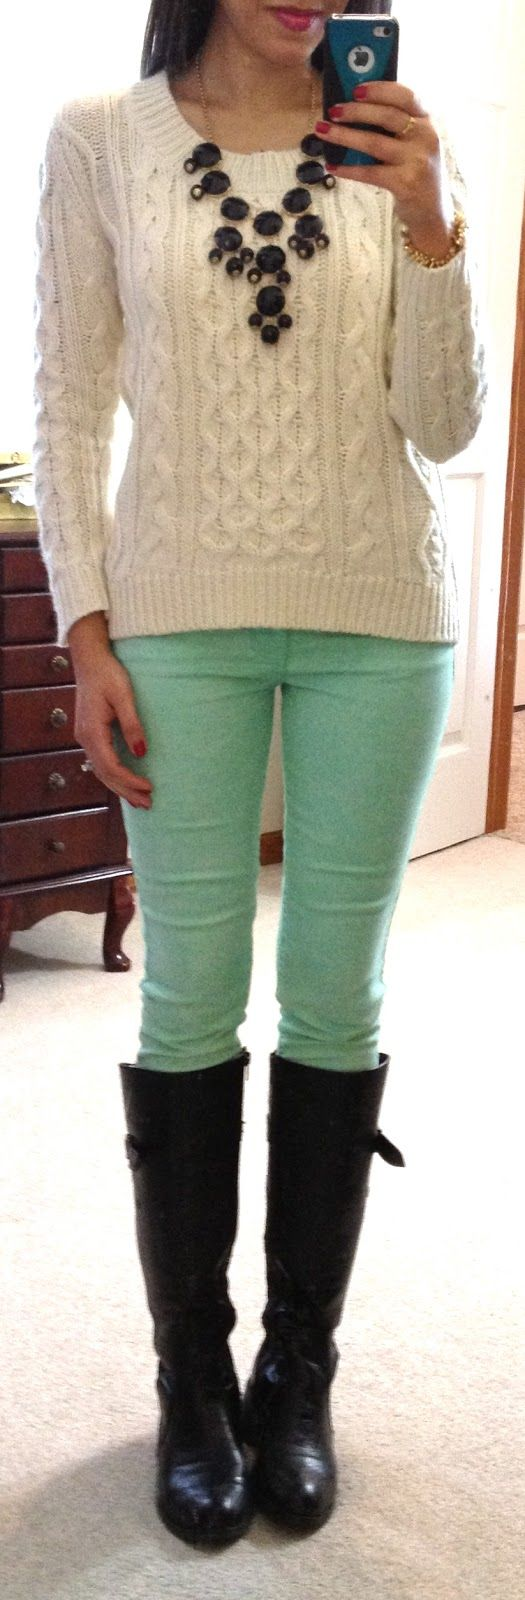 mint, cream, & black inspiration of how to wear my new jeans now all I need is for summer to arrive in blighty.